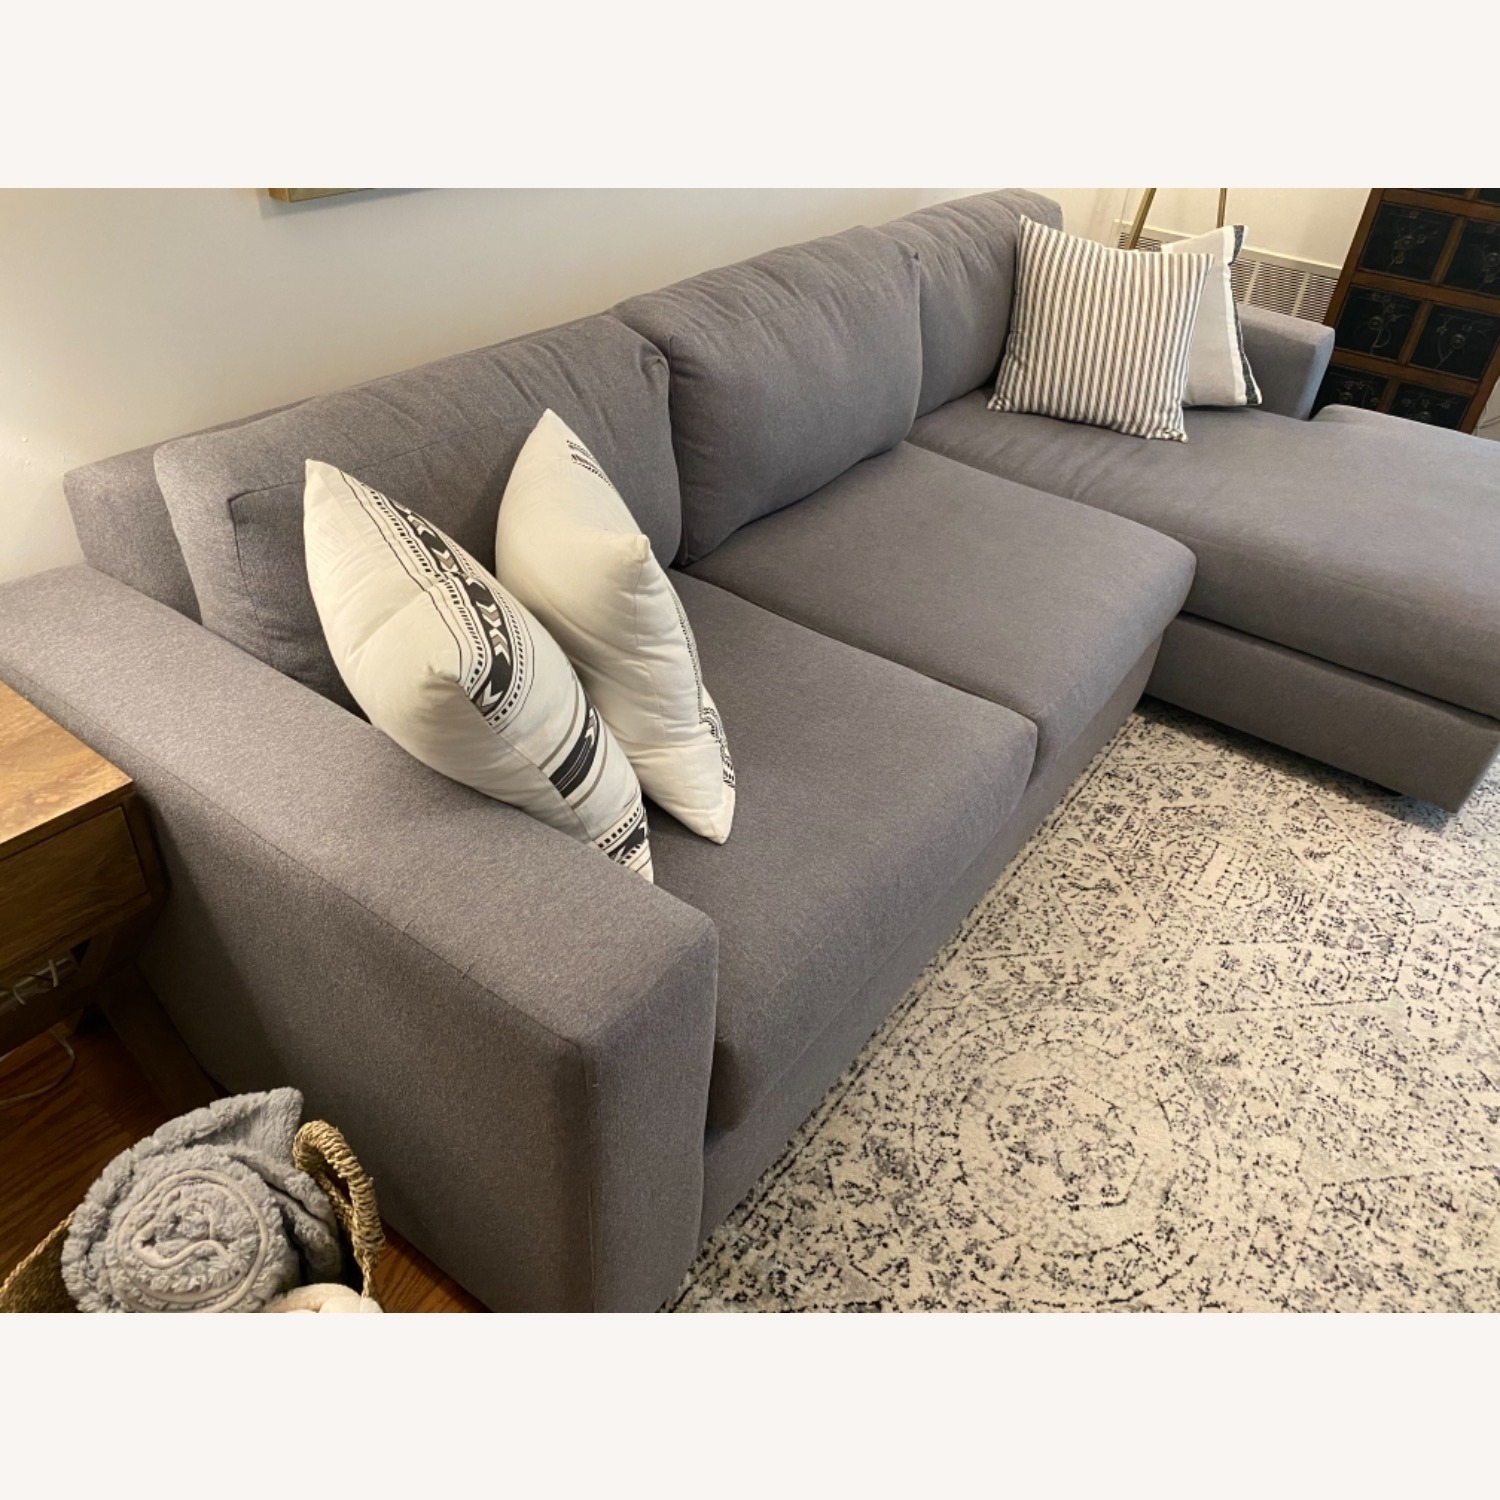 West Elm Urban Chaise Sectional - image-5